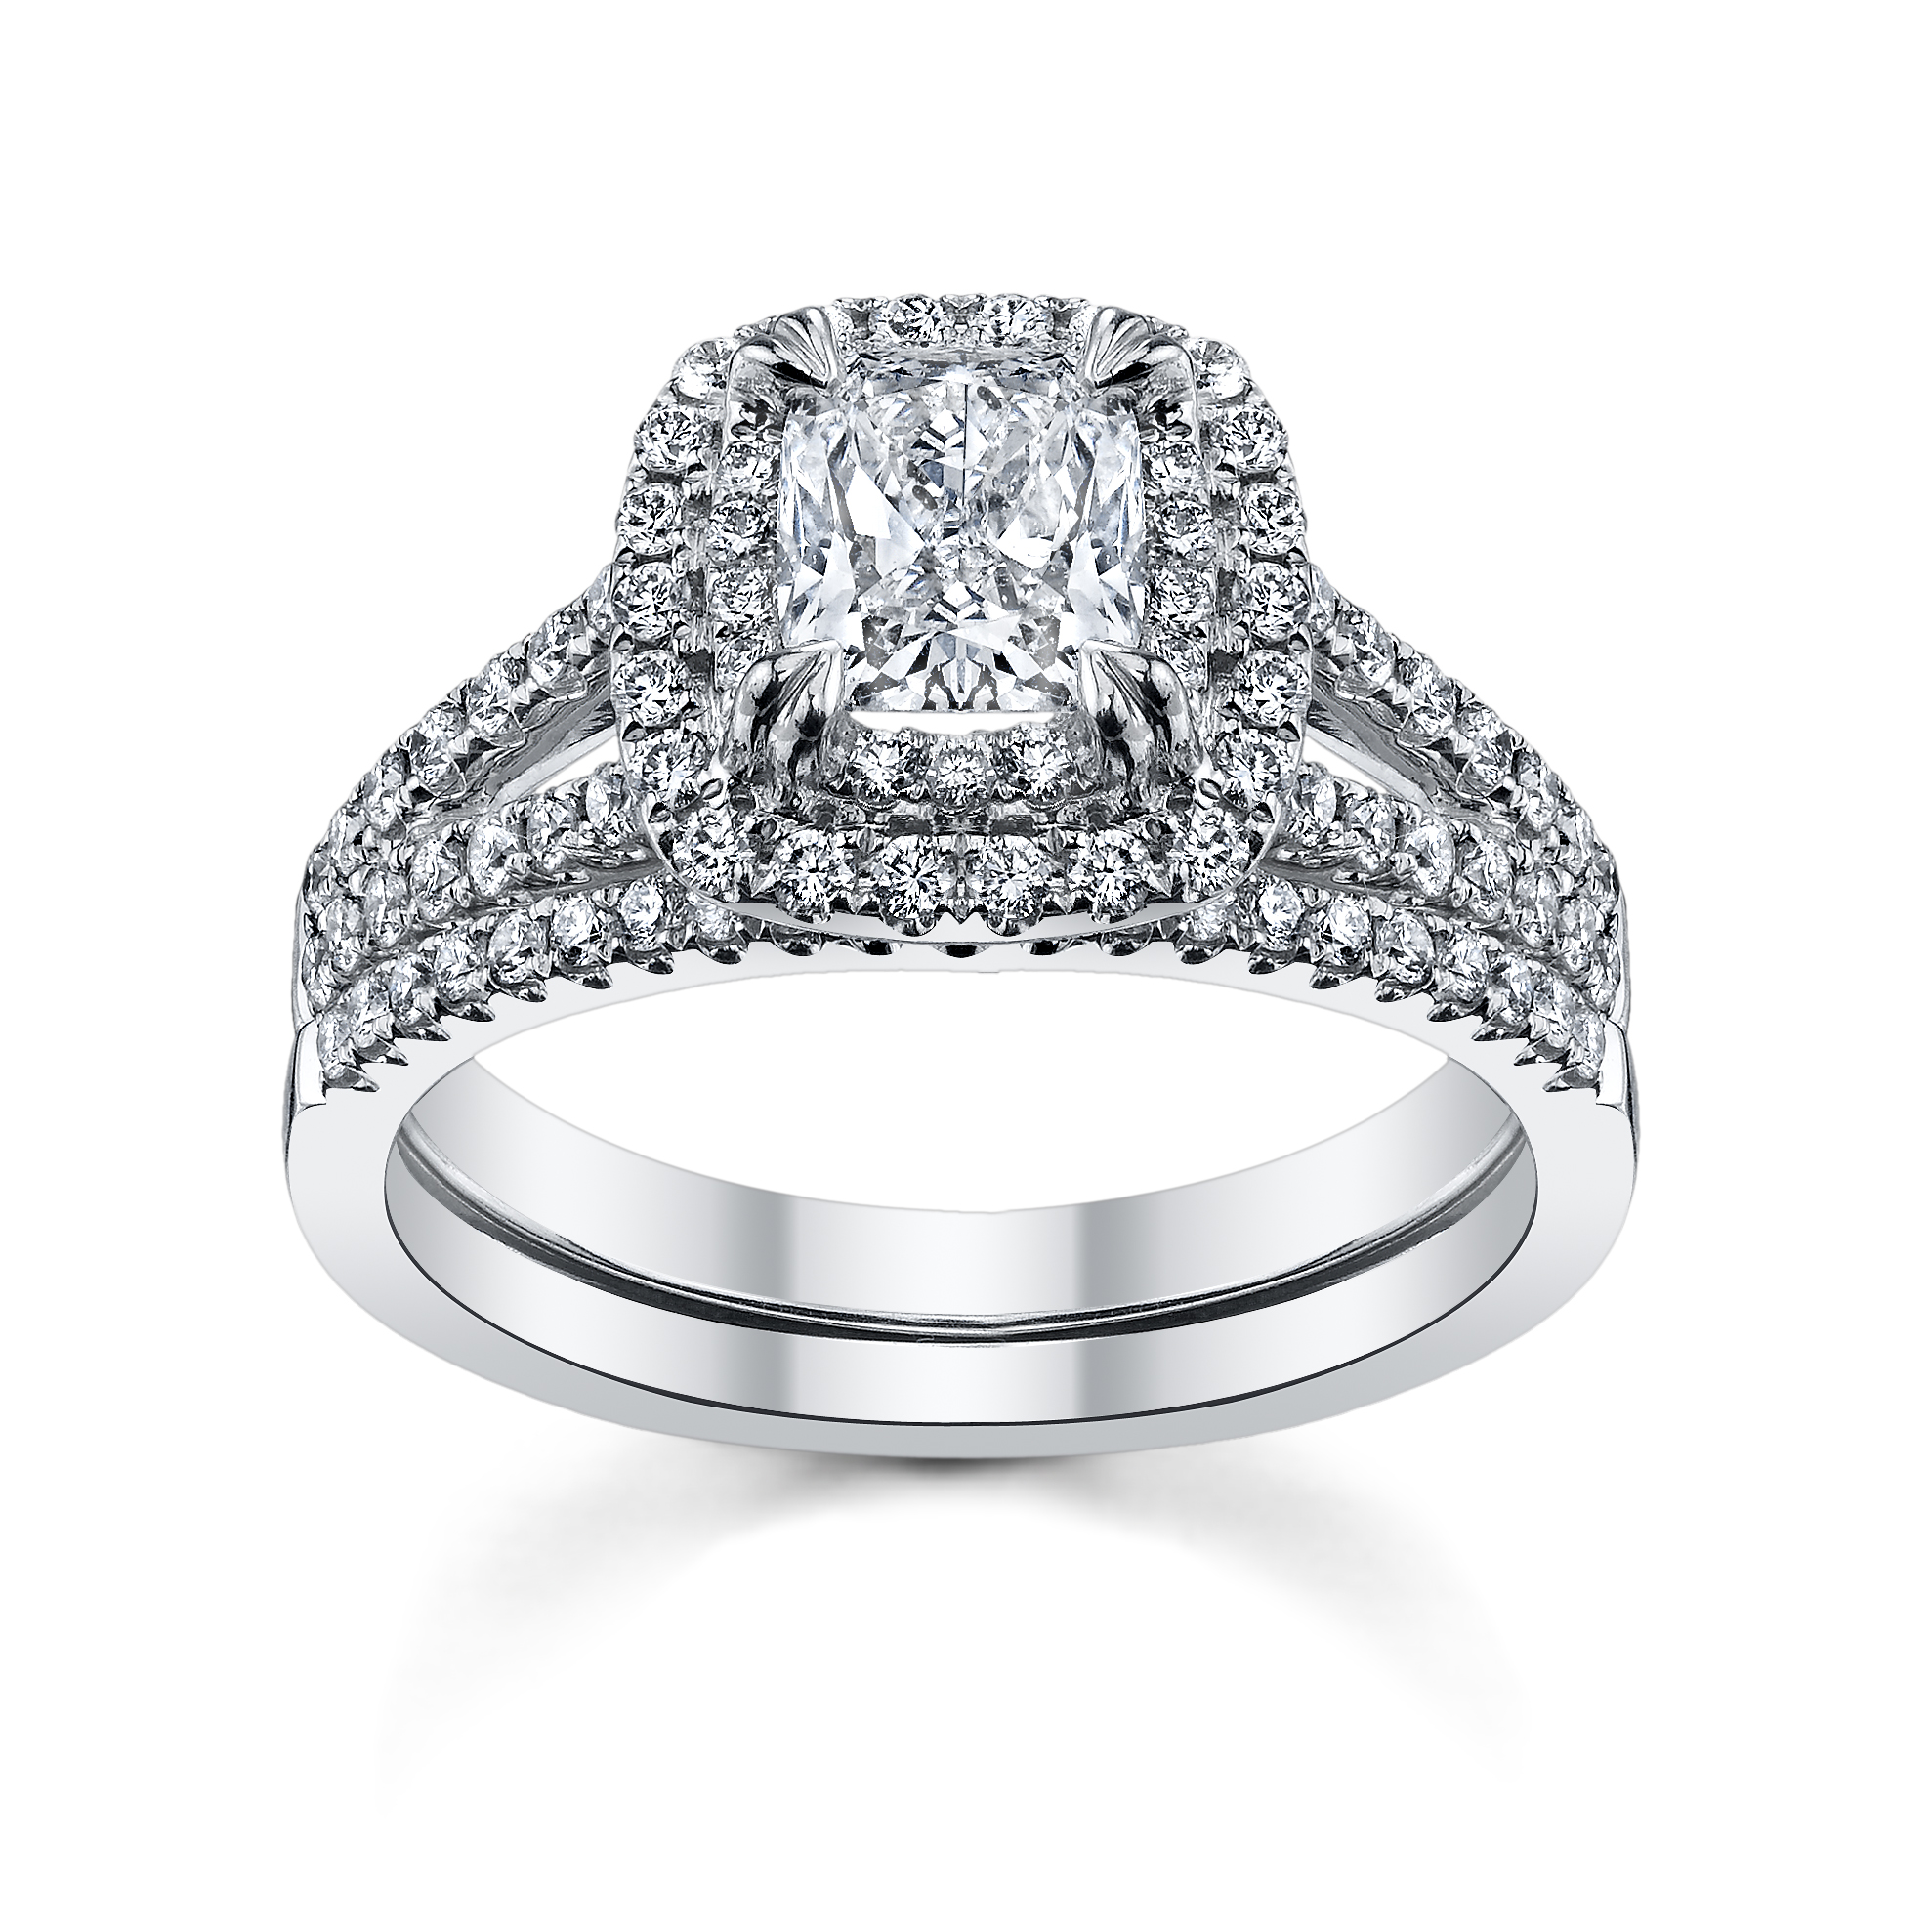 Would You Rather Be Engaged Now Or Wait For A Bigger. Habib Wedding Rings. Smoky Quartz Rings. Two Diamond Engagement Rings. Radient Engagement Rings. Blue Sandstone Wedding Rings. Tie Dye Engagement Rings. Pink Blue Wedding Rings. Rapunzel Engagement Rings